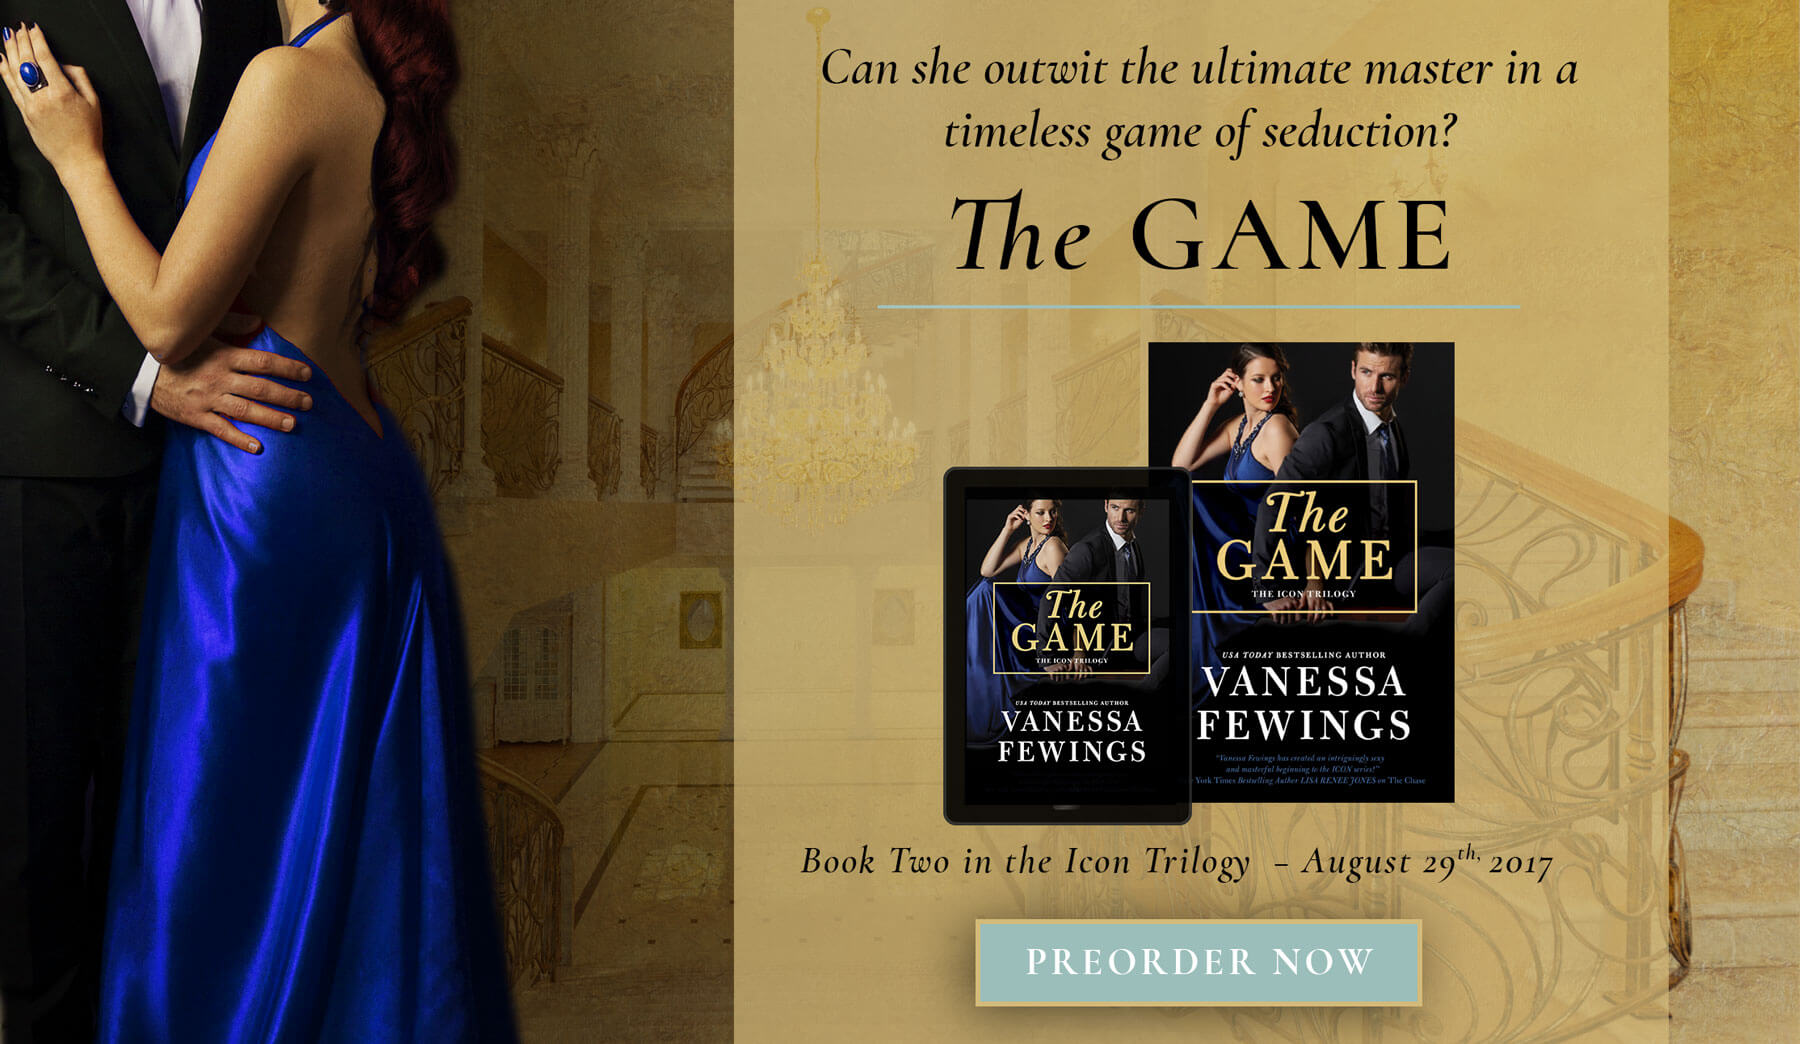 The Game - Book 2 in the Icon Trilogy by Vanessa Fewings